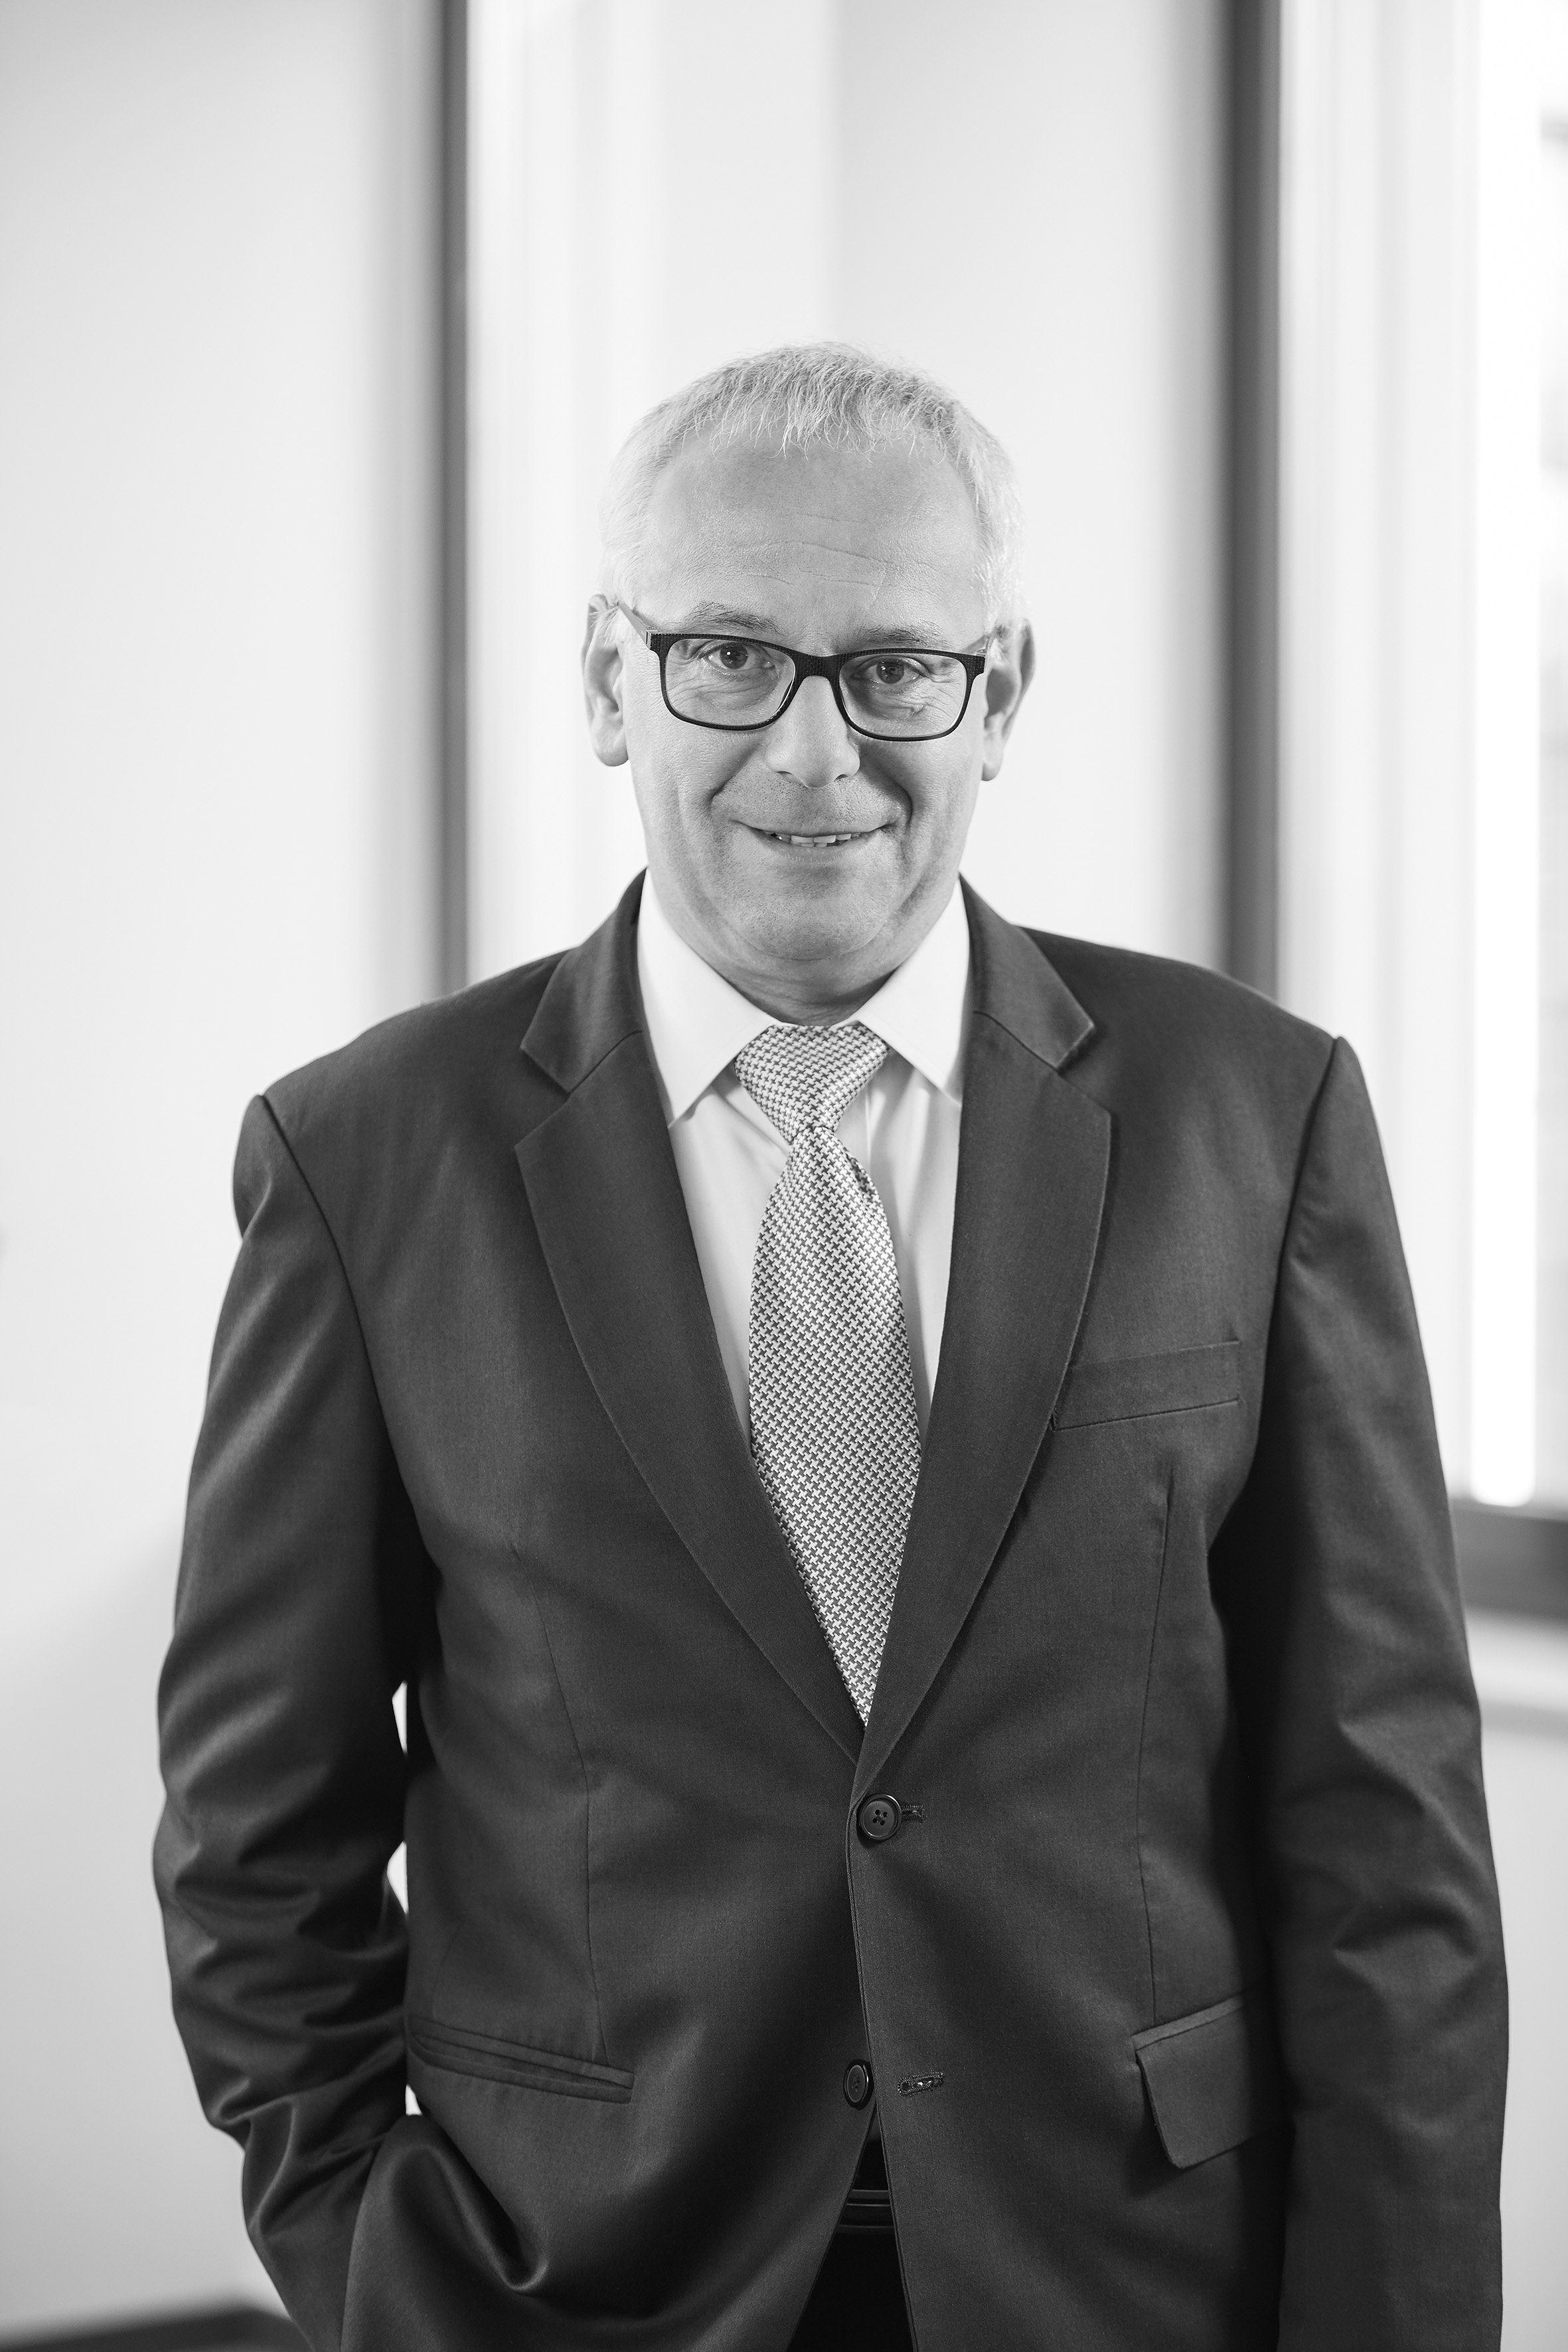 PlasticsEurope Deutschland e. V. mourns the passing of CEO Dr. Rüdiger Baunemann who died suddenly and unexpectedly on 17 April 2020. (Source: Plastics Europe)